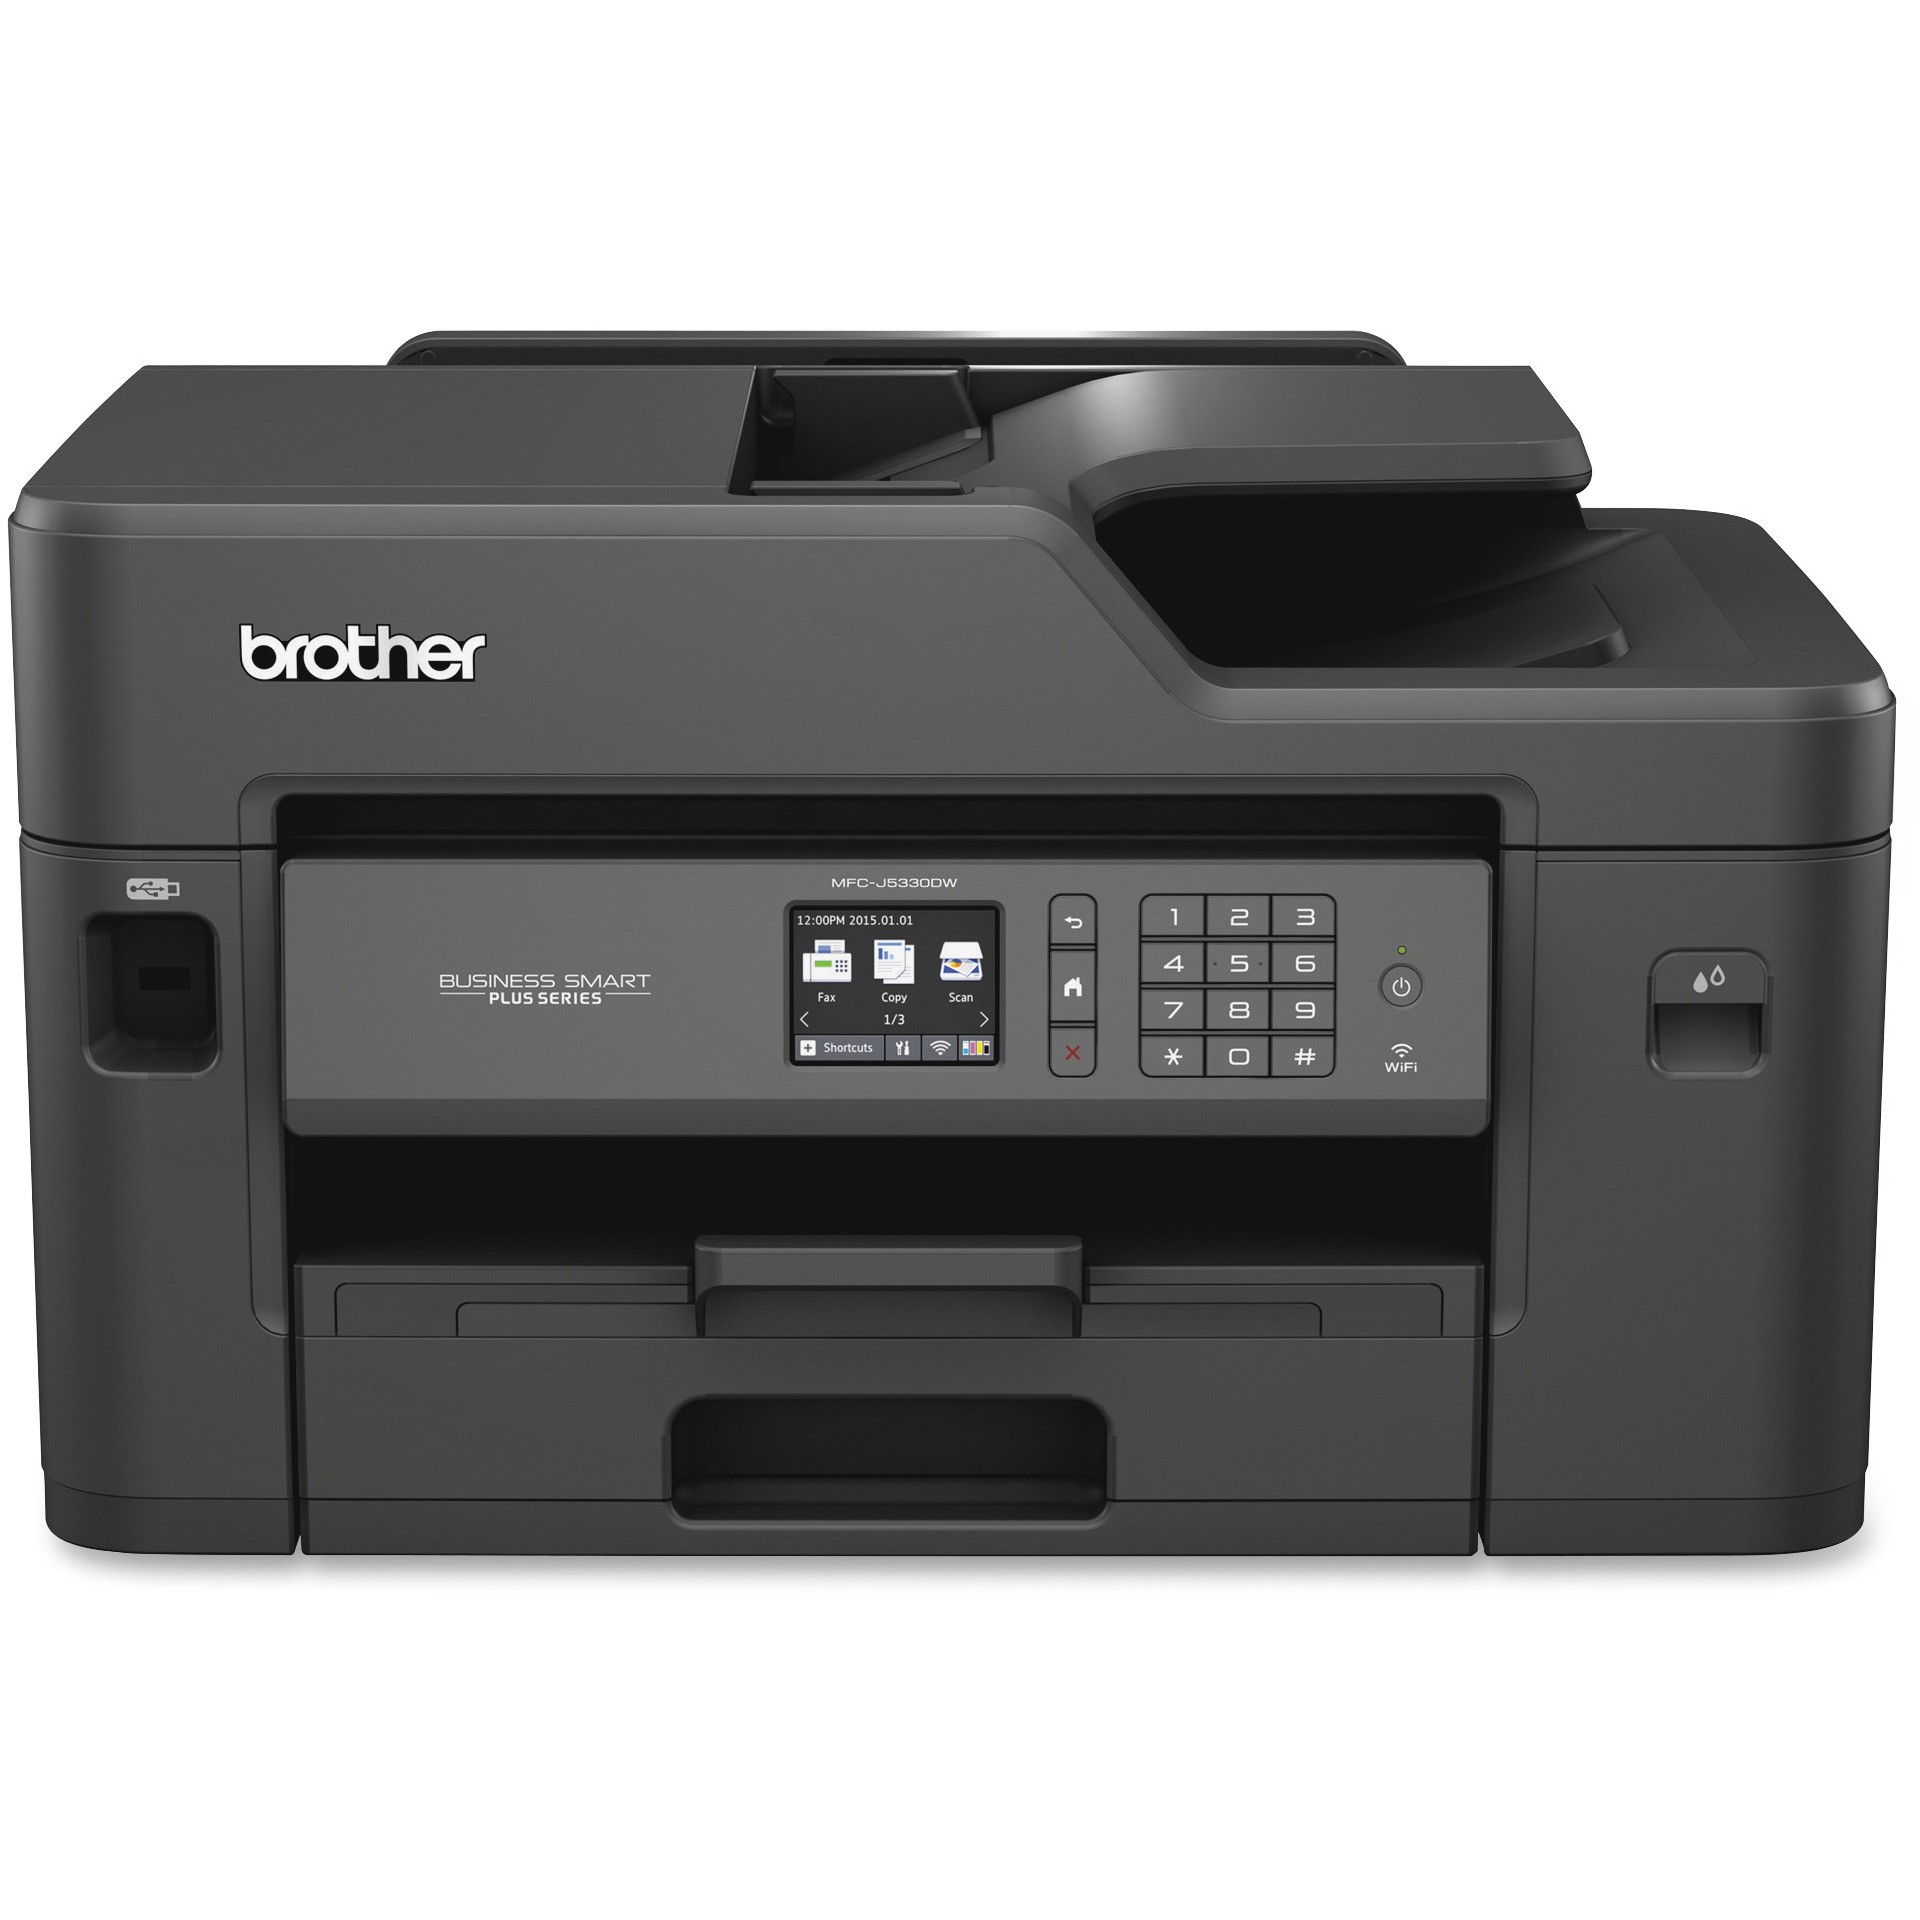 Brother Business Smart Plus MFC-J5330DW Color Inkjet All-in-One, Copy Fax Print Scan by Brother